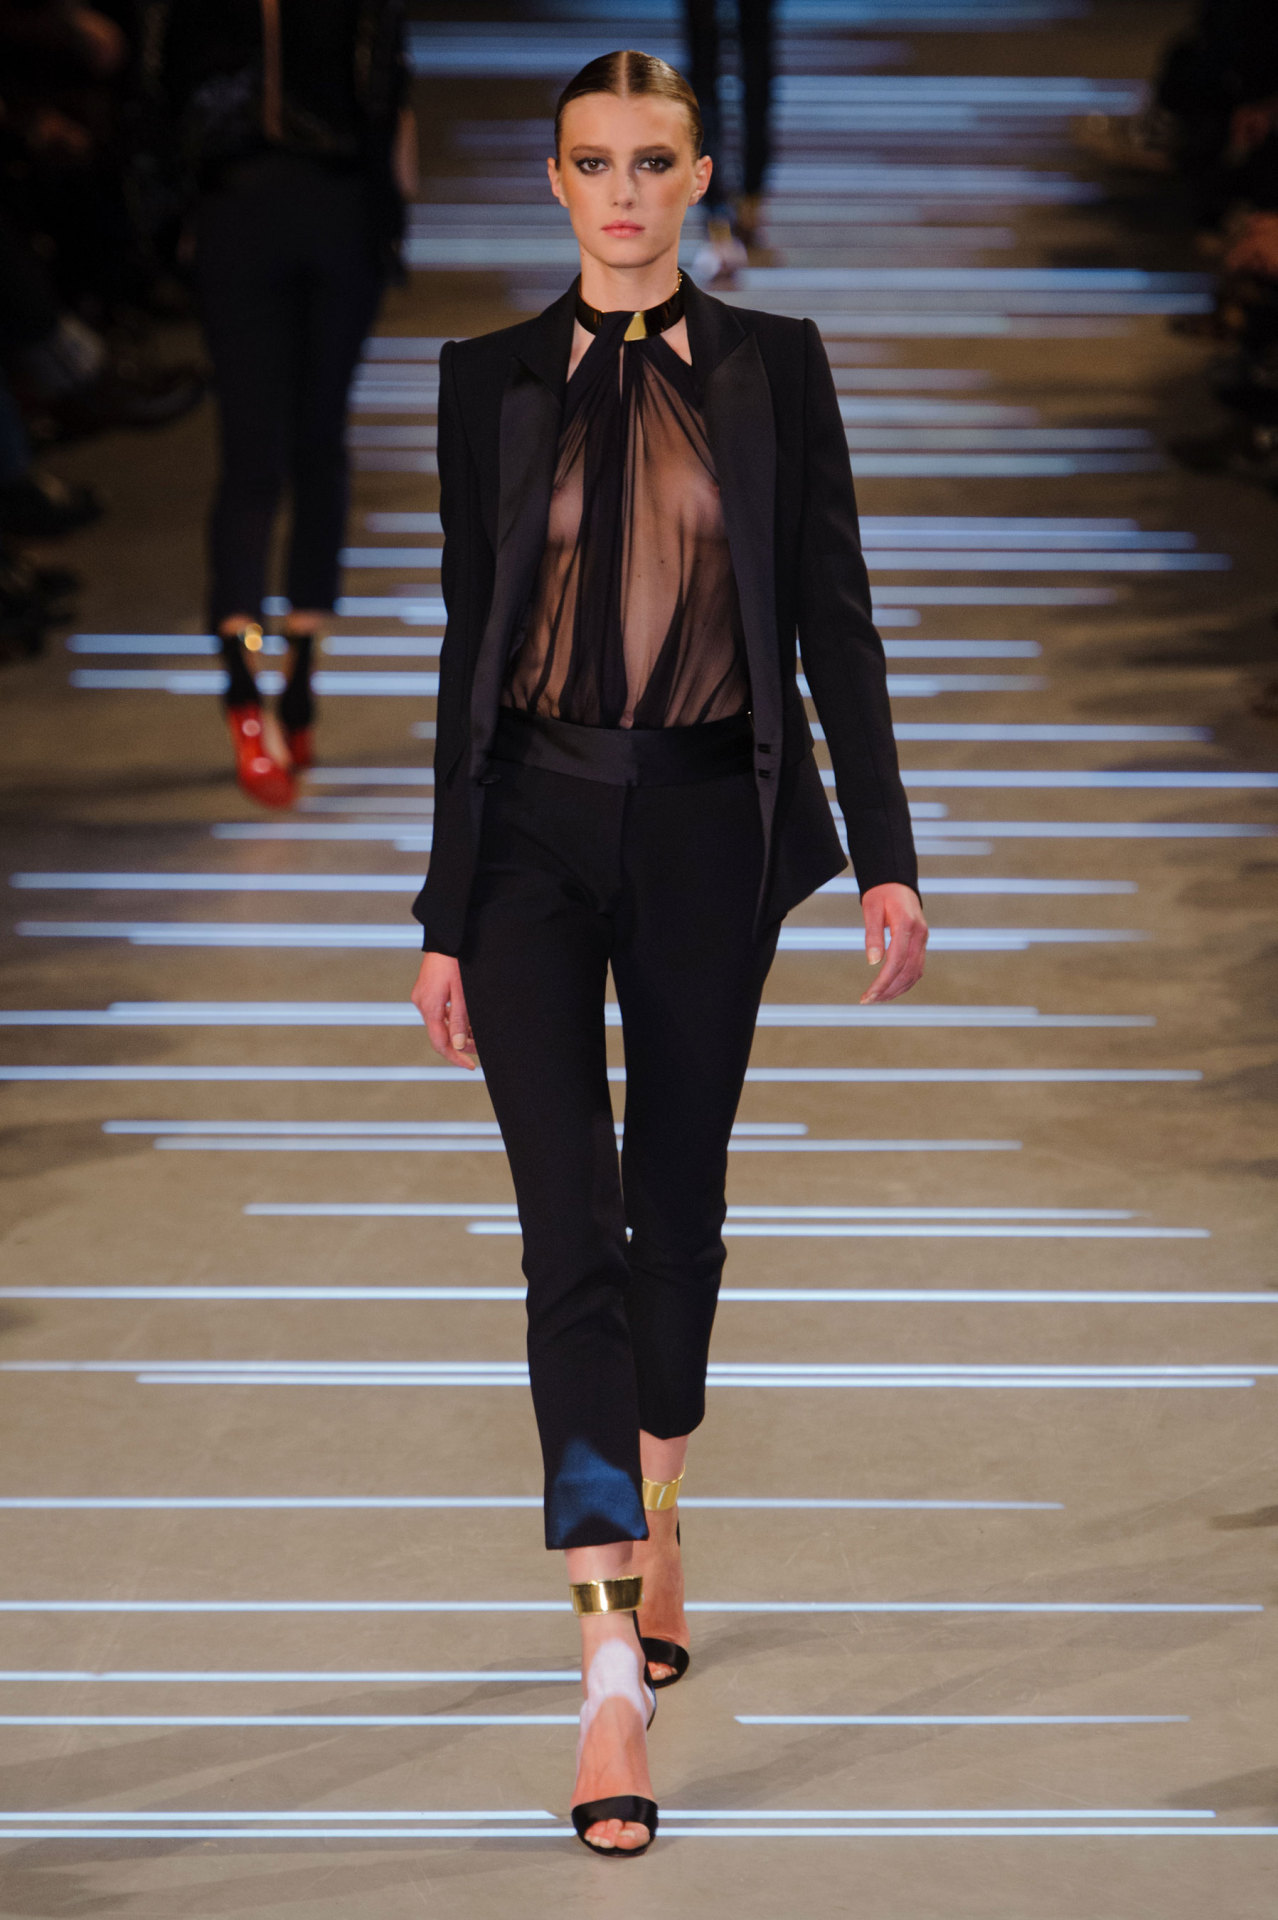 Model: Sigrid Agren - for Alexandre Vauthier Haute Couture Spring 2013